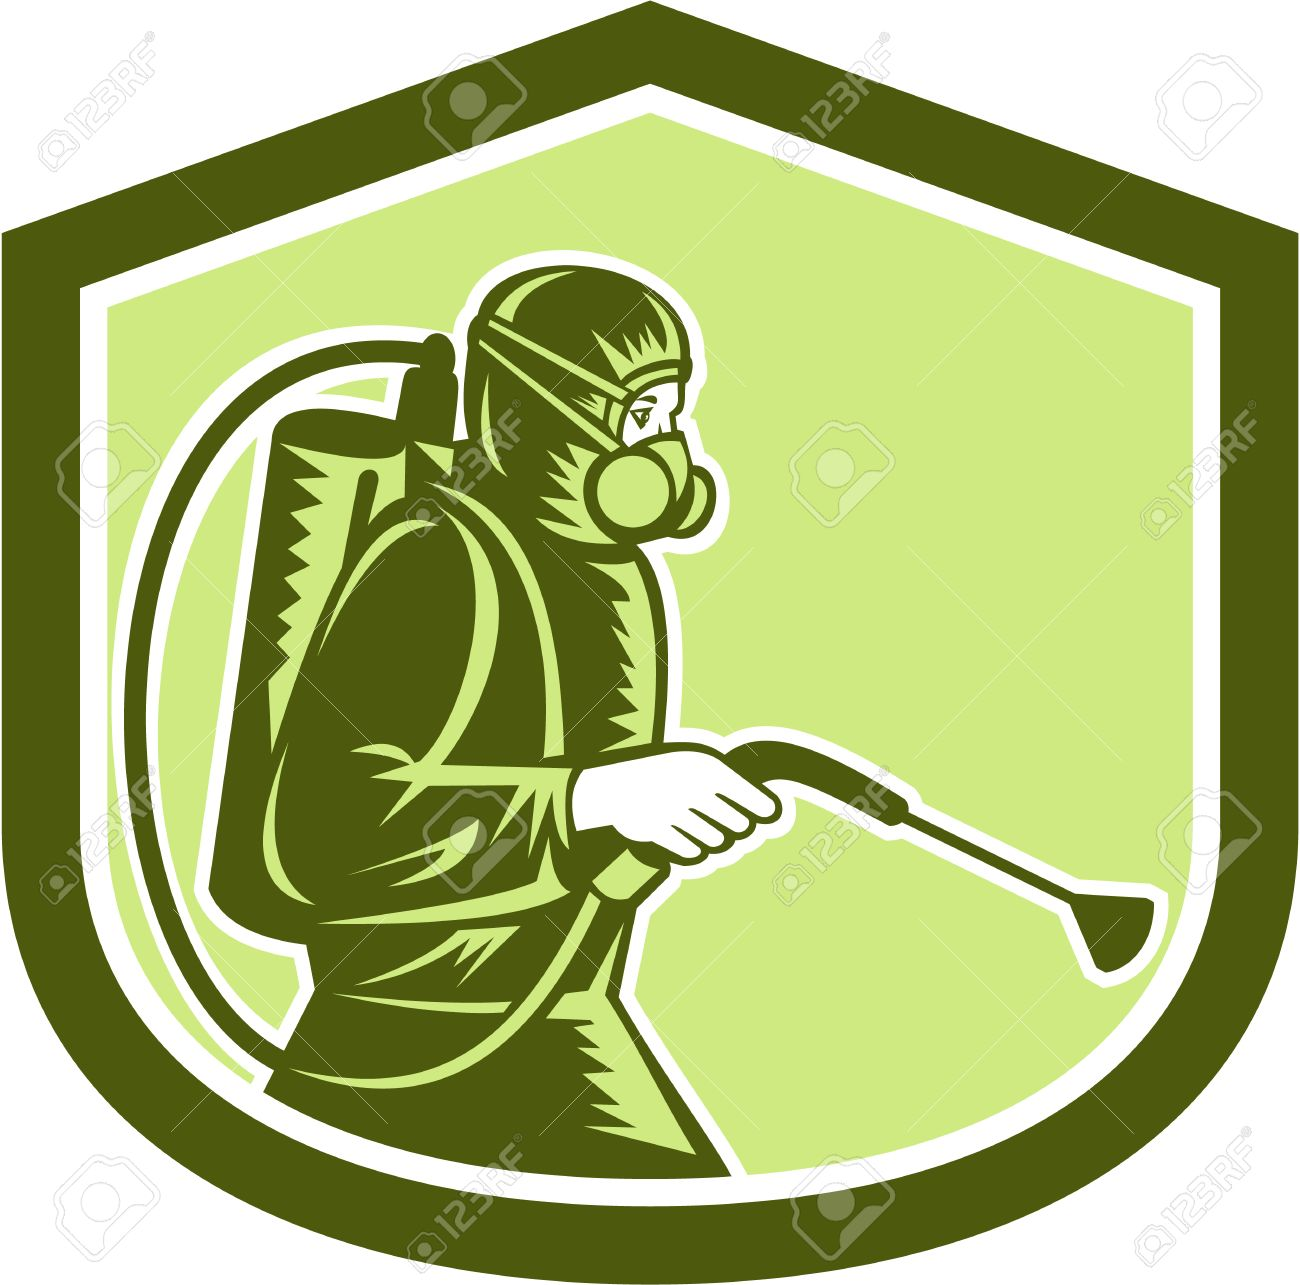 Illustration of pest control exterminator spraying side view set inside shield crest on isolated background done in retro style. Stock Vector - 28594150